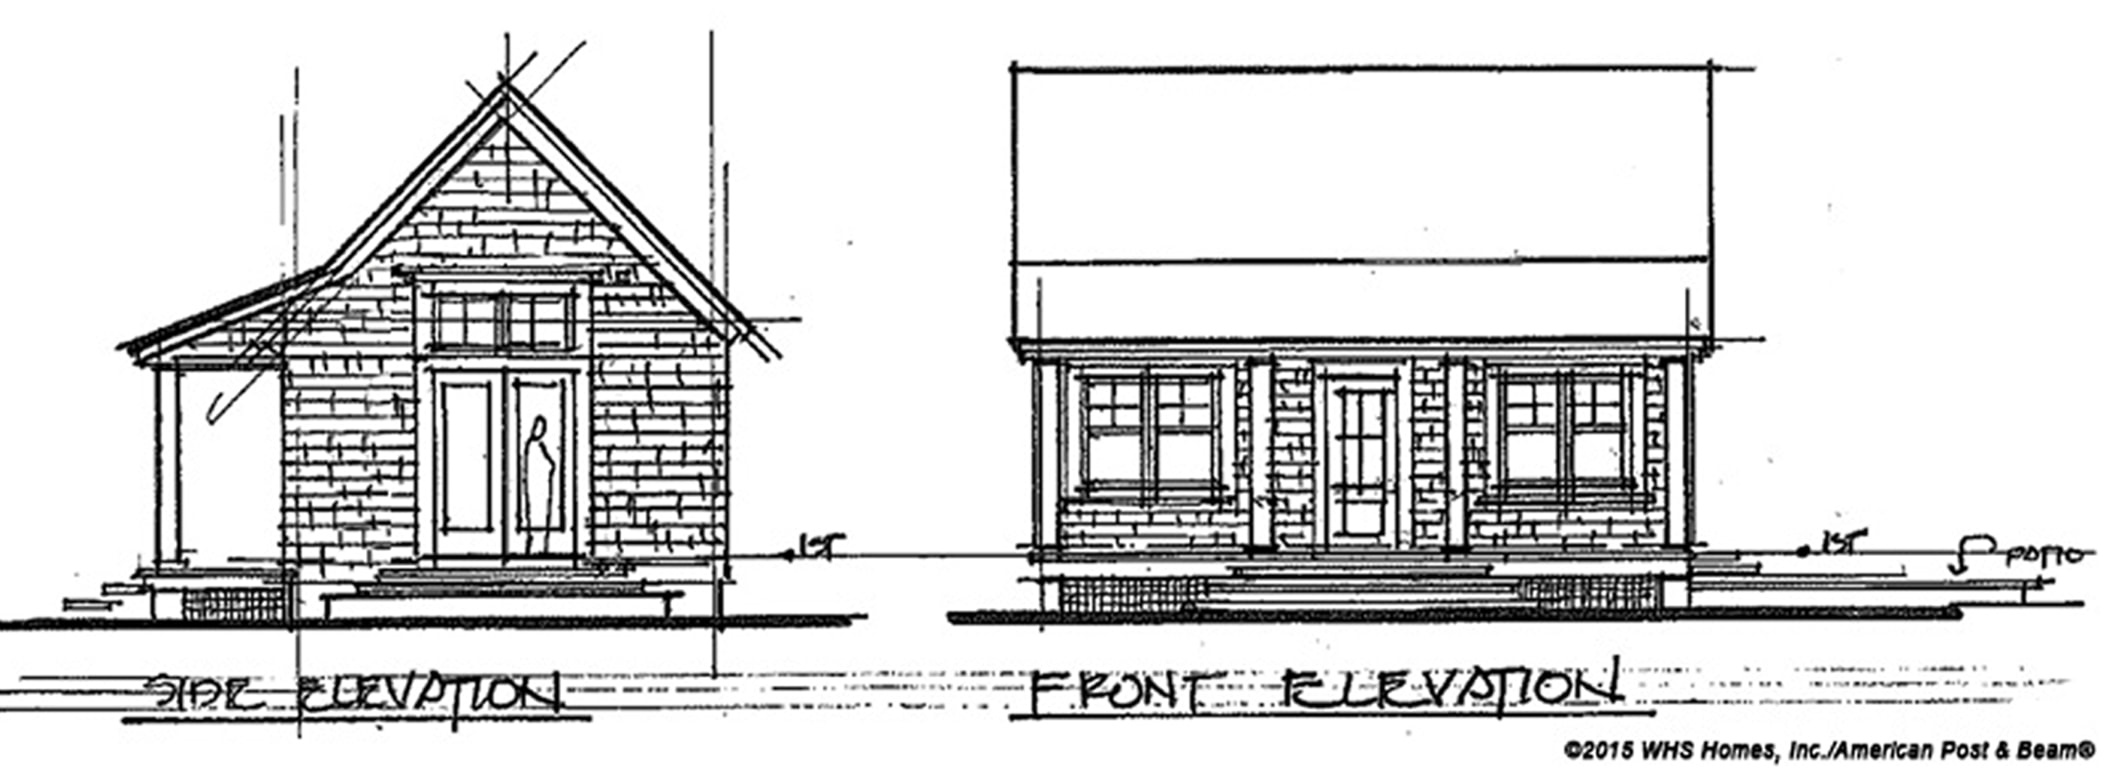 Side and front elevation sketch - HIDEAWAY COTTAGE